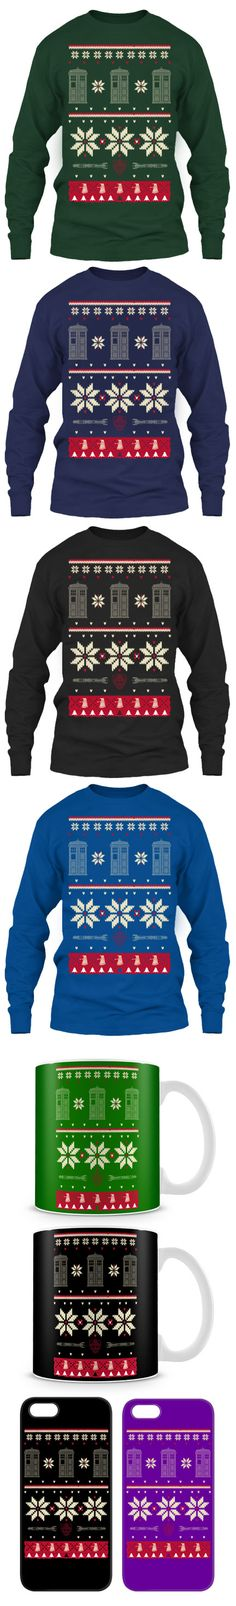 Dr. Who Ugly Christmas Sweater! Click The Image To Buy It Now or Tag Someone You Want To Buy This For.